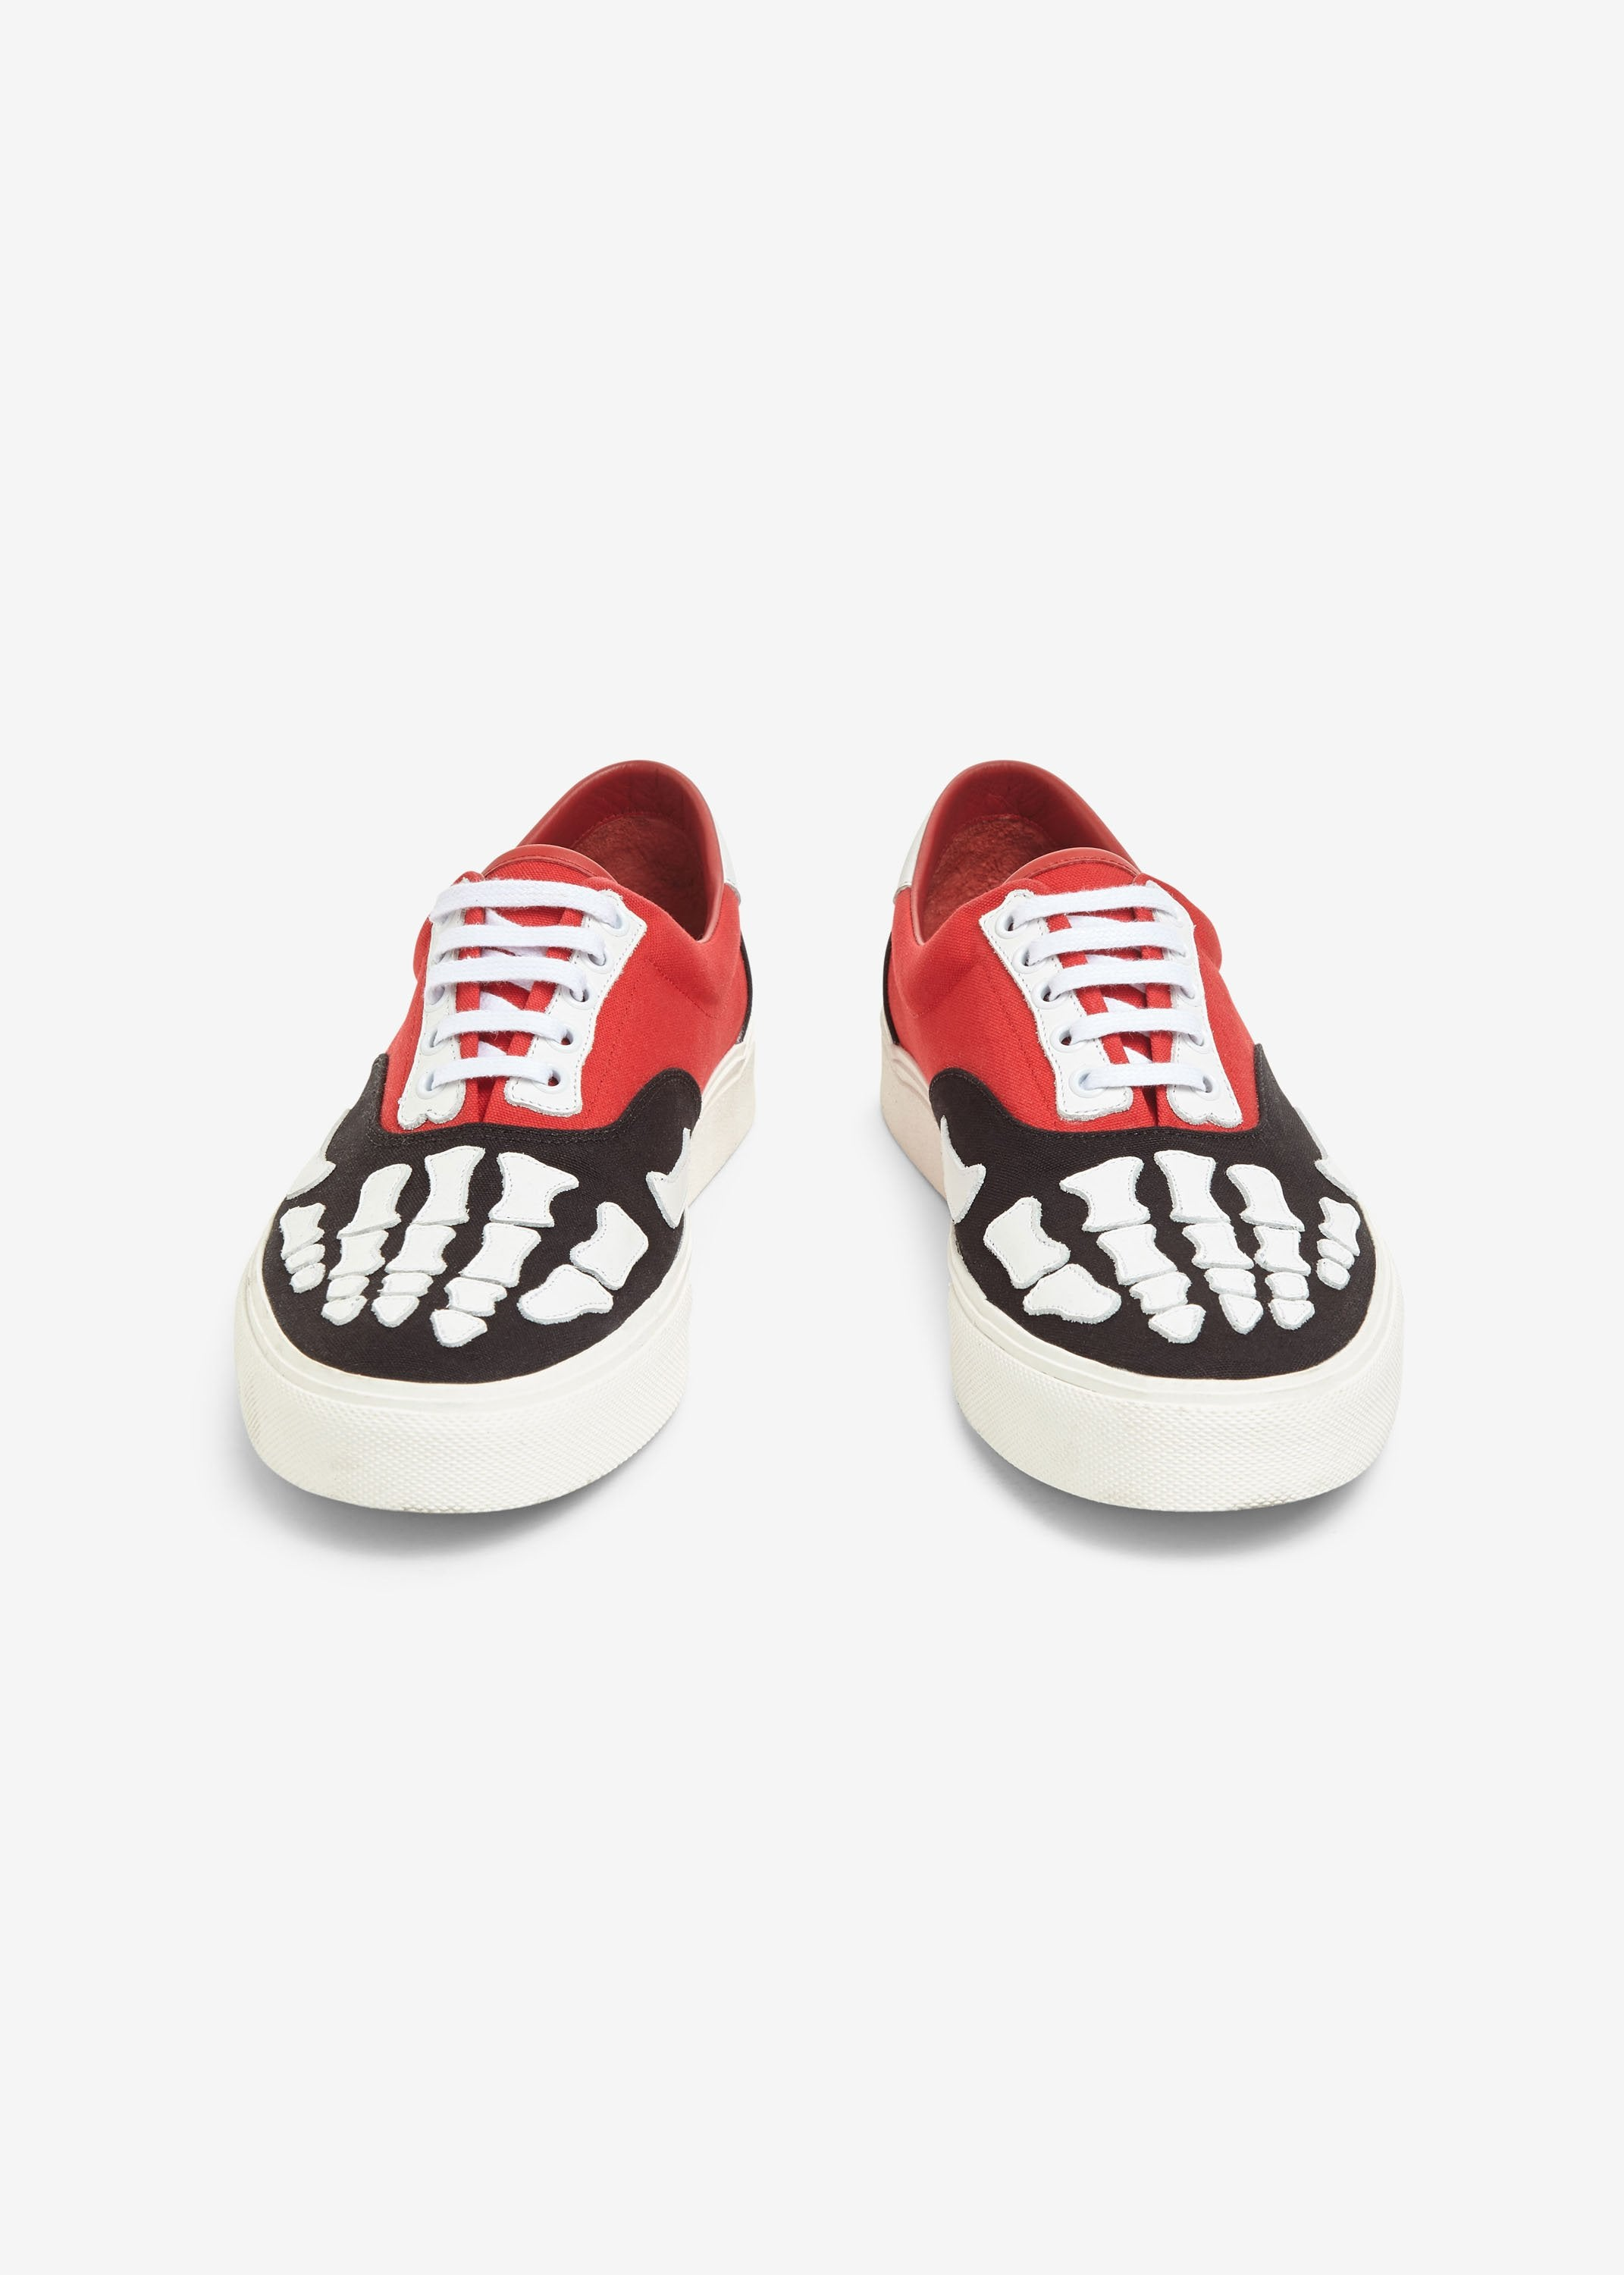 skel-toe-lace-up-black-red-white-image-2